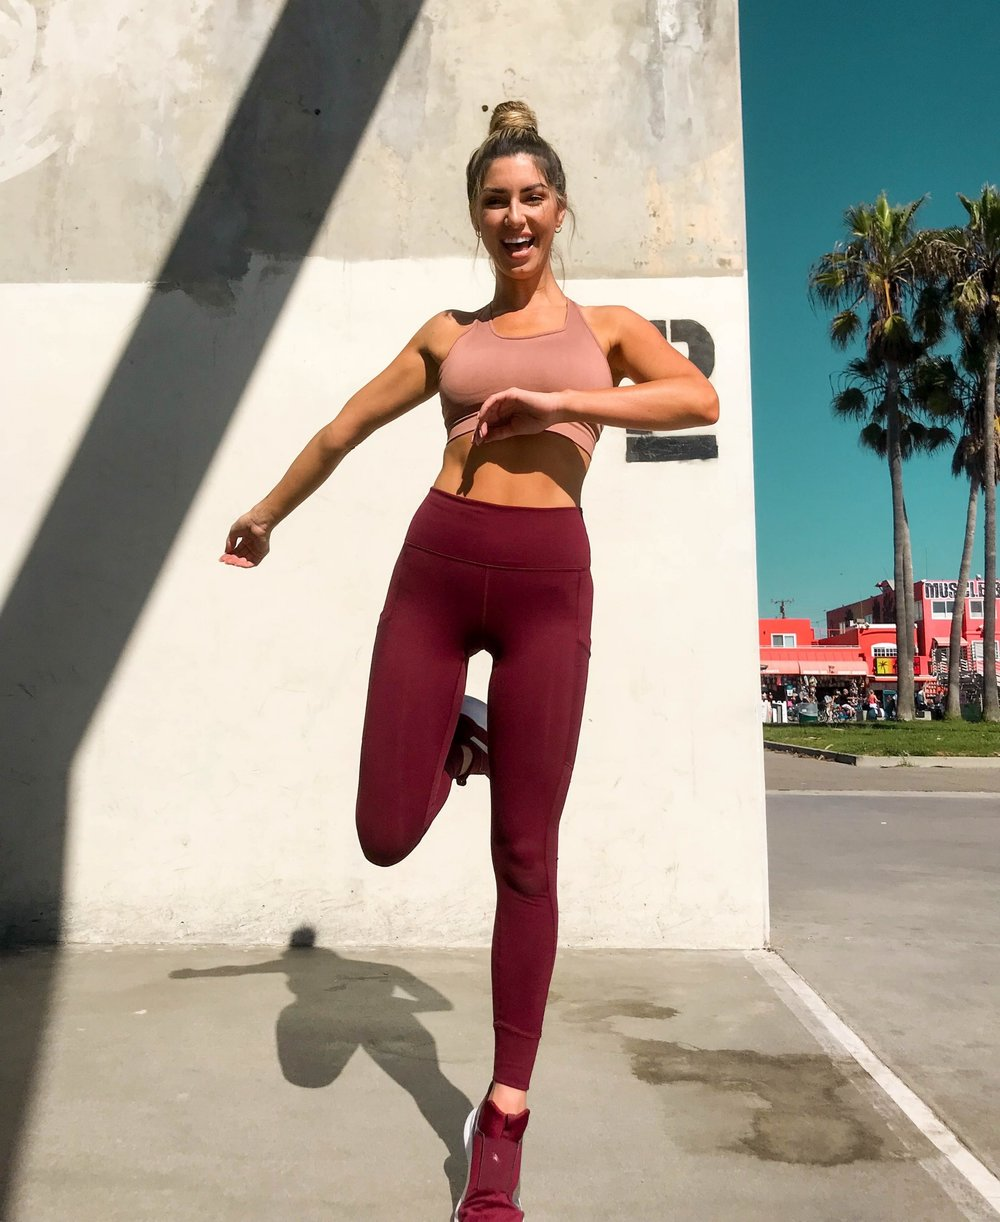 LOWER BODY BURN: 5 HIIT Moves for Lean Legs & a Lifted Booty